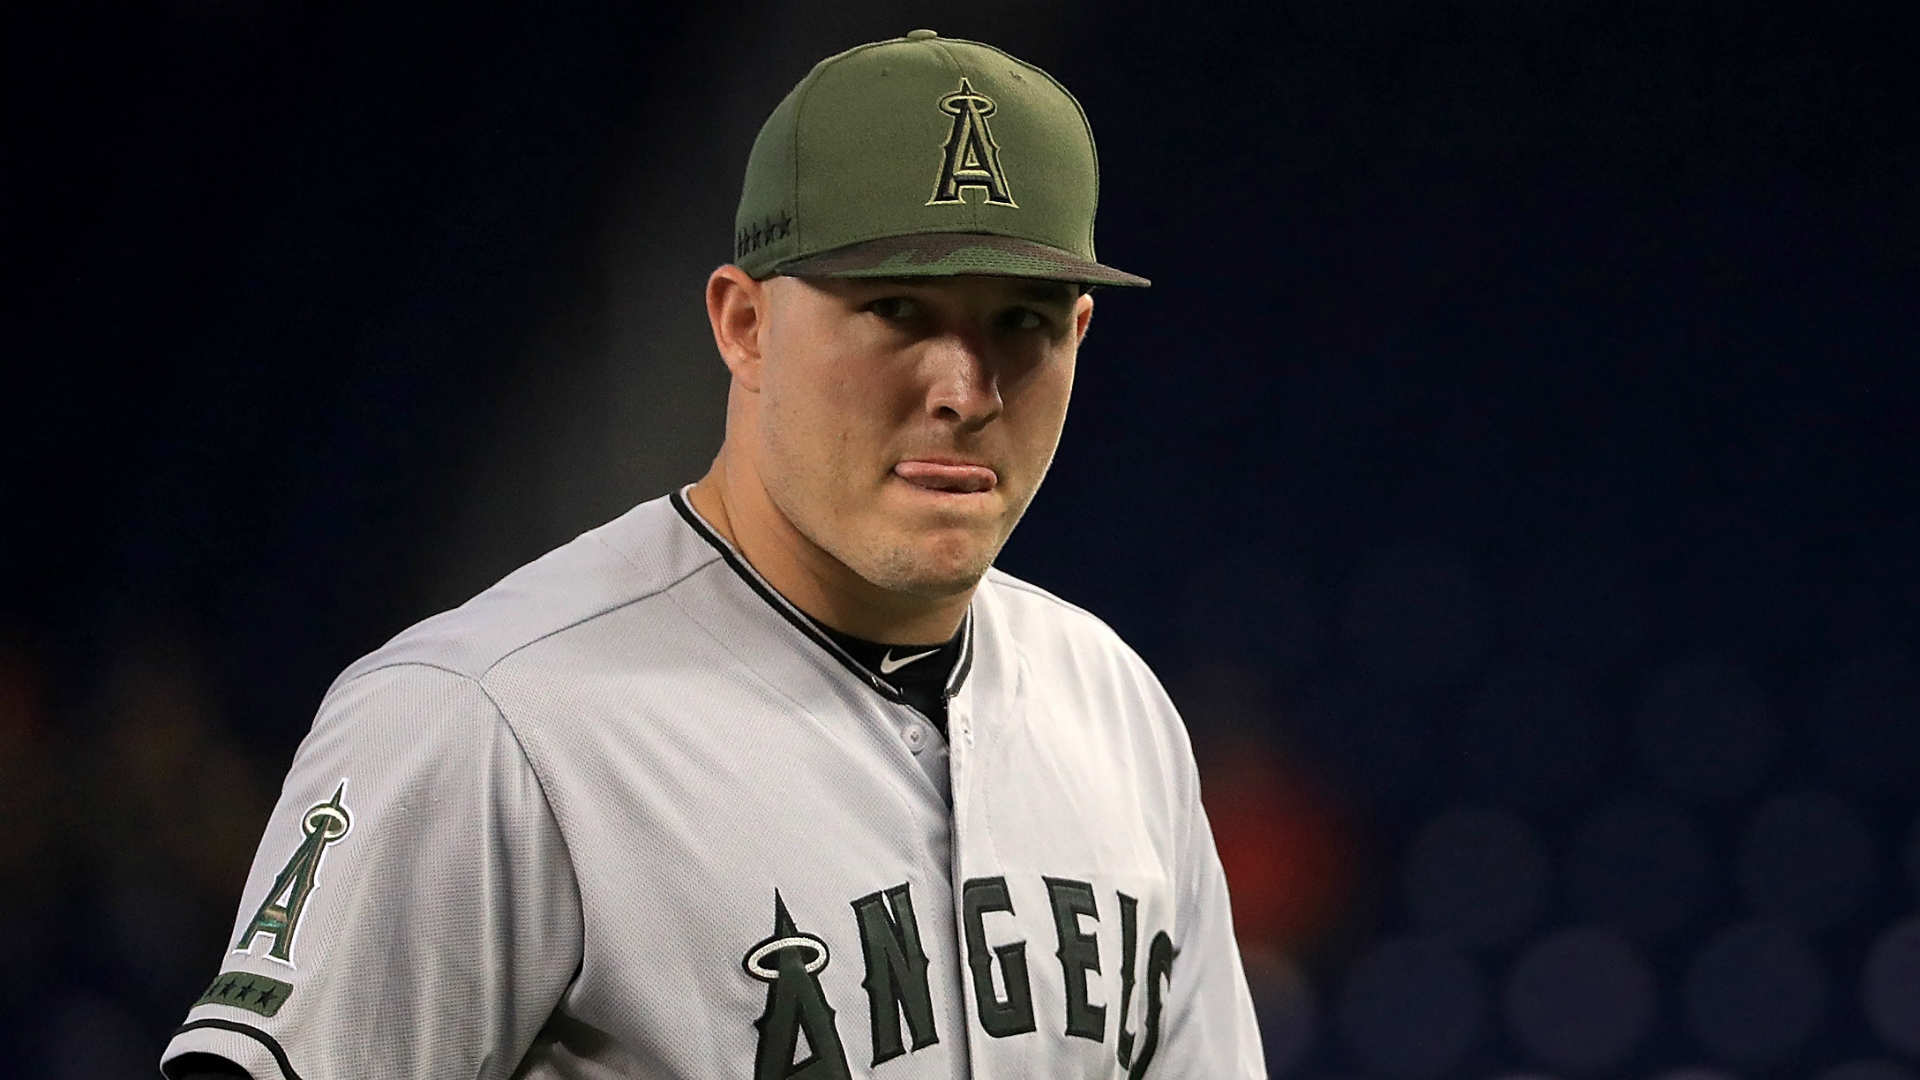 Mike-Trout-052817-USNews-Getty-FTR